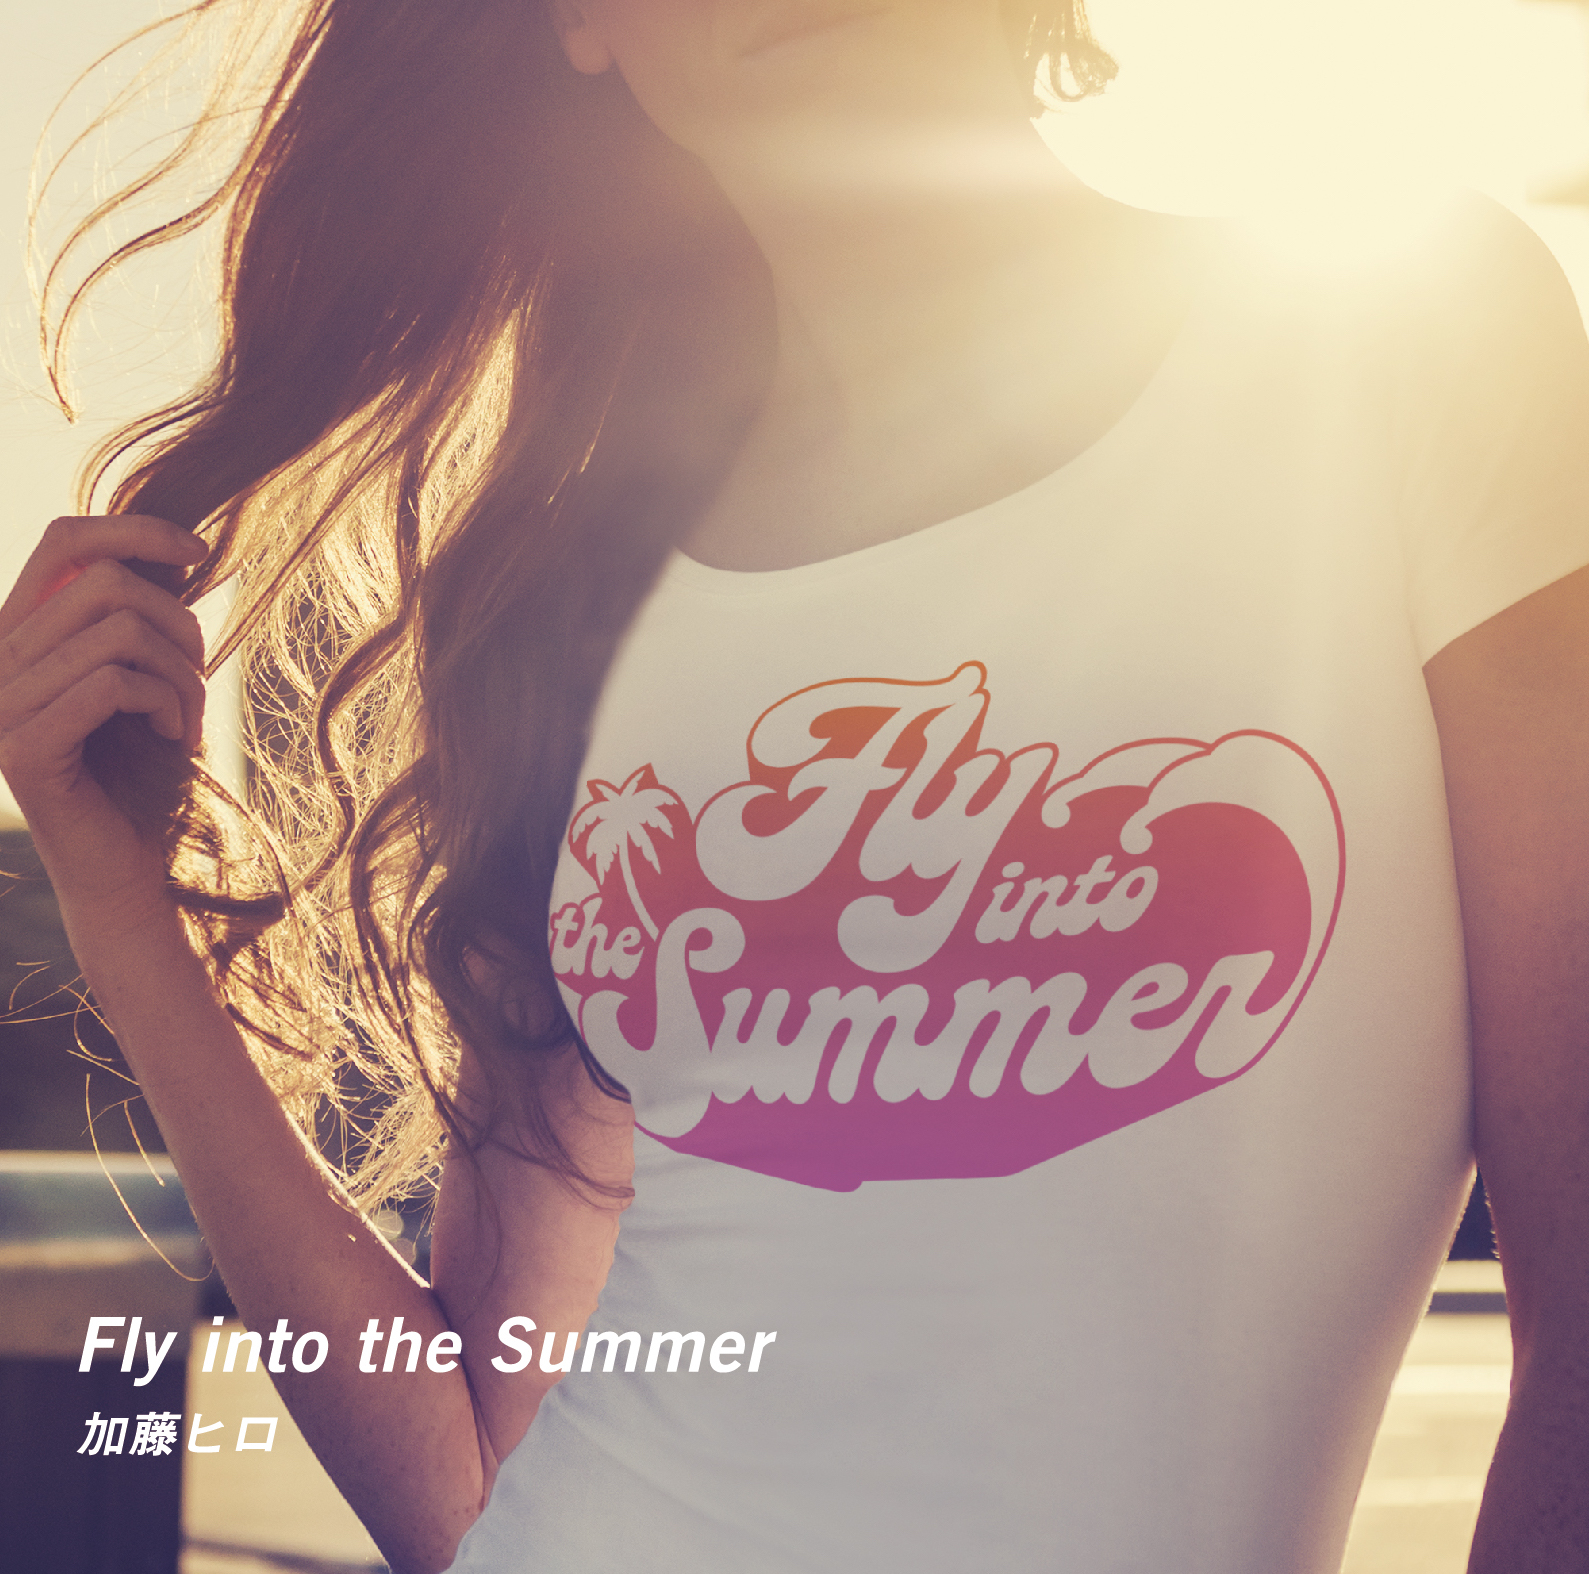 2nd シングル「Fly into the Summer」